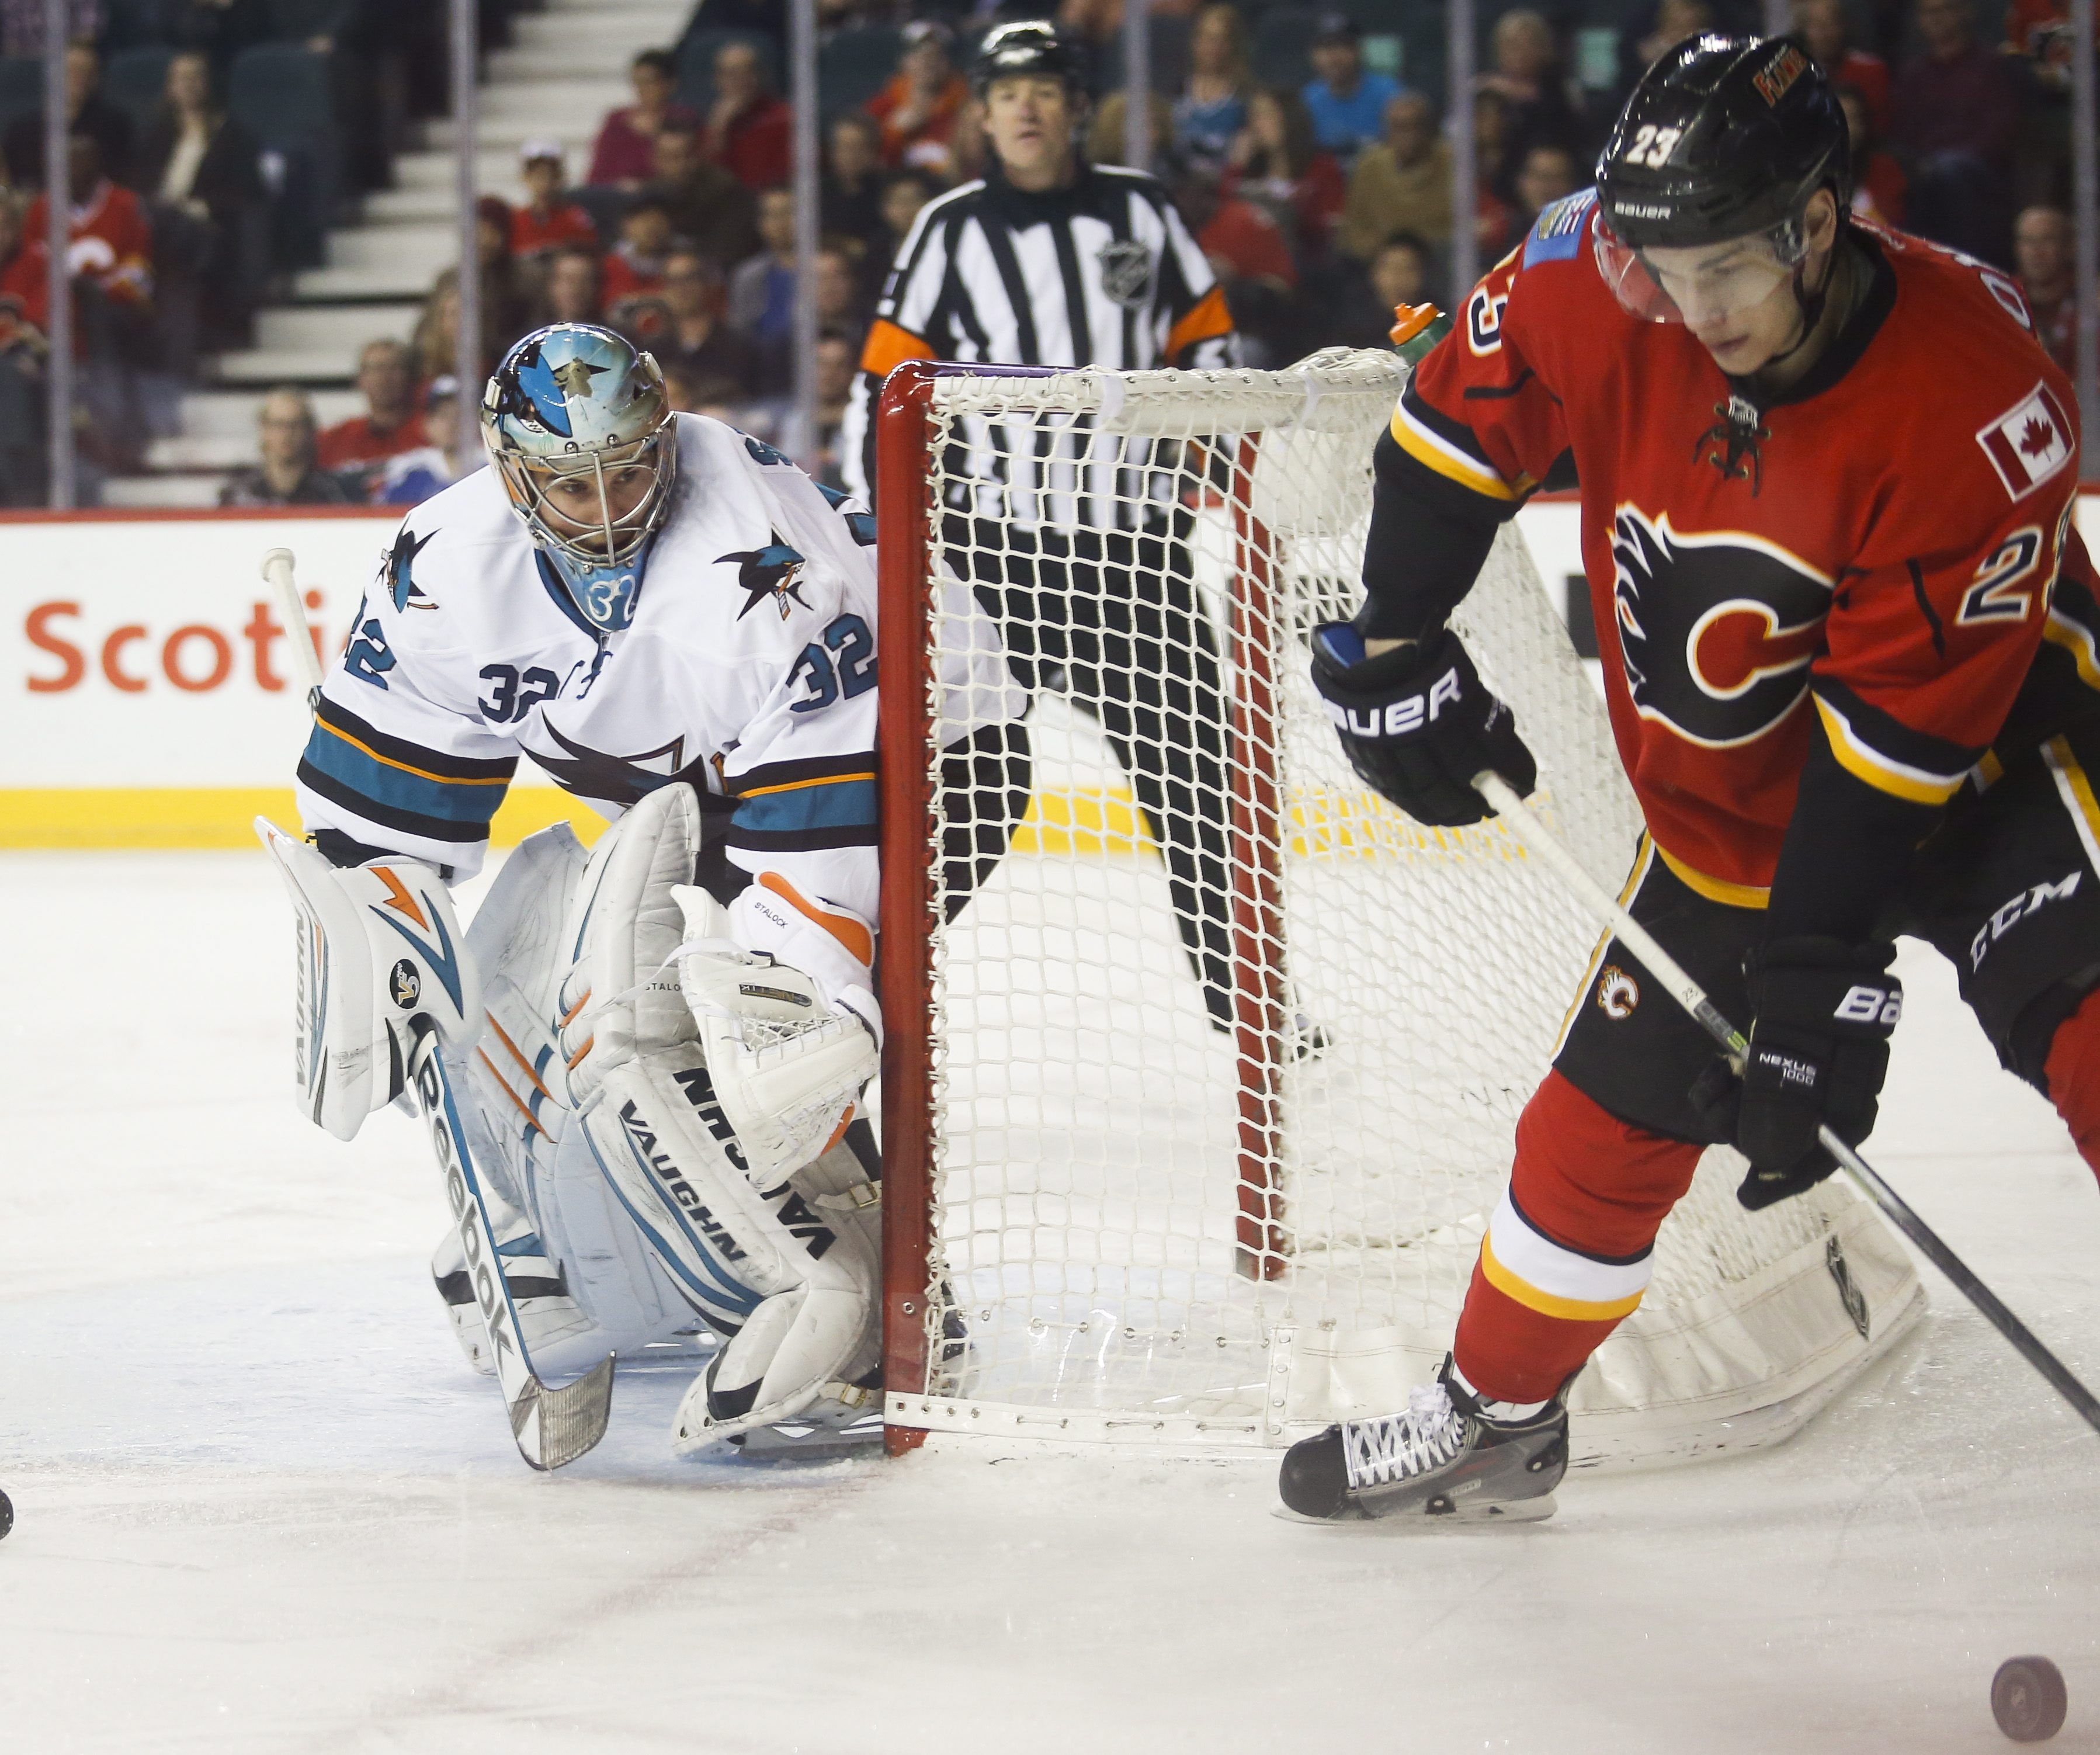 Sharks lose in shootout, but clinch playoff spot